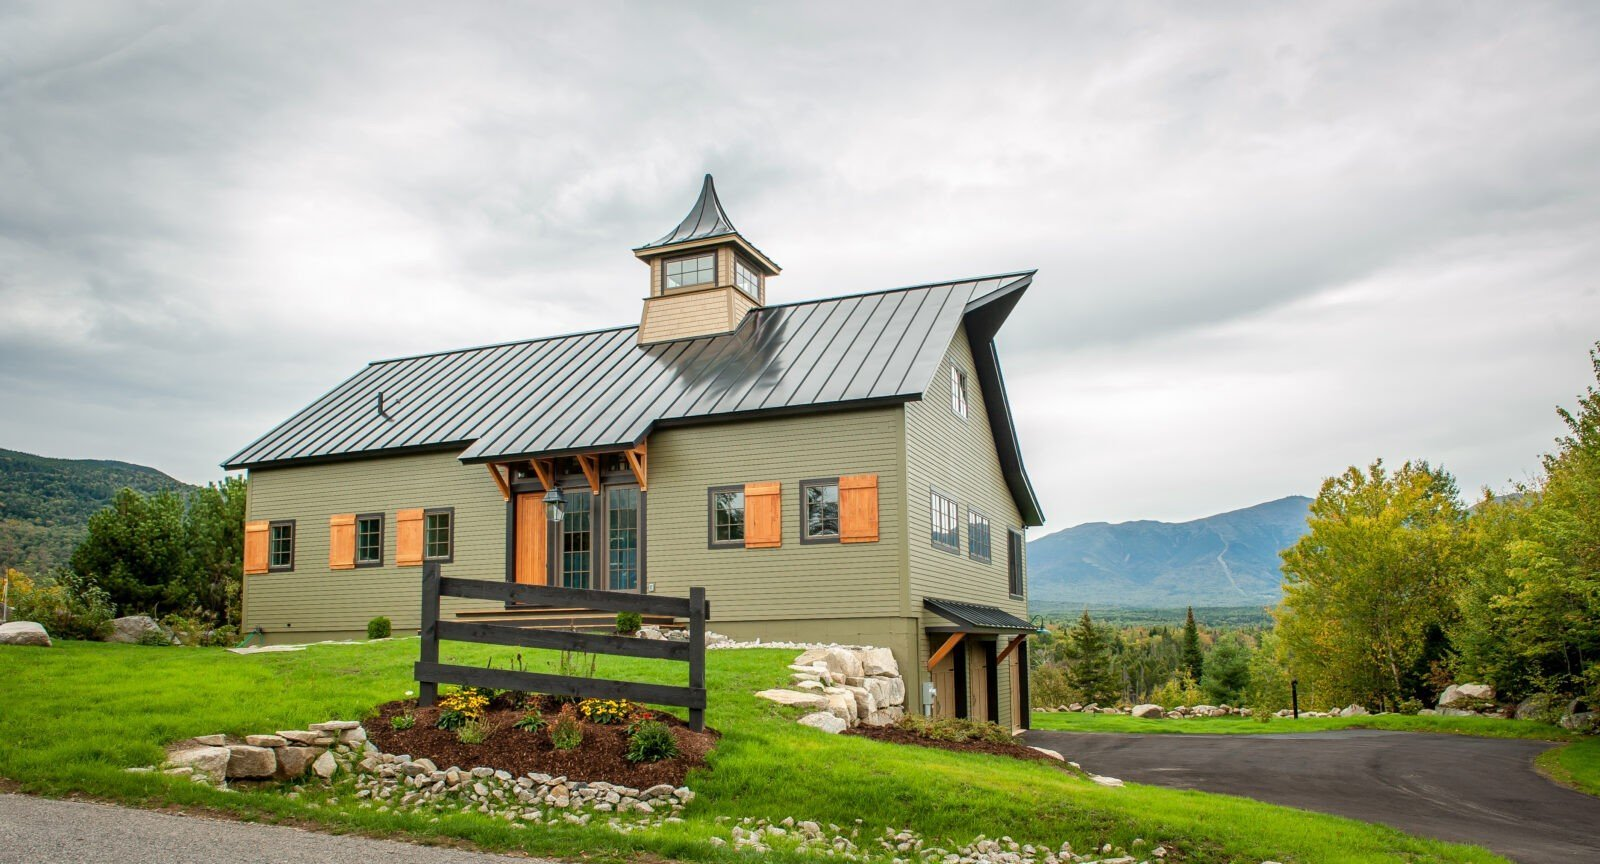 Top notch barn home plans from the ybh design team Barnhouse plans